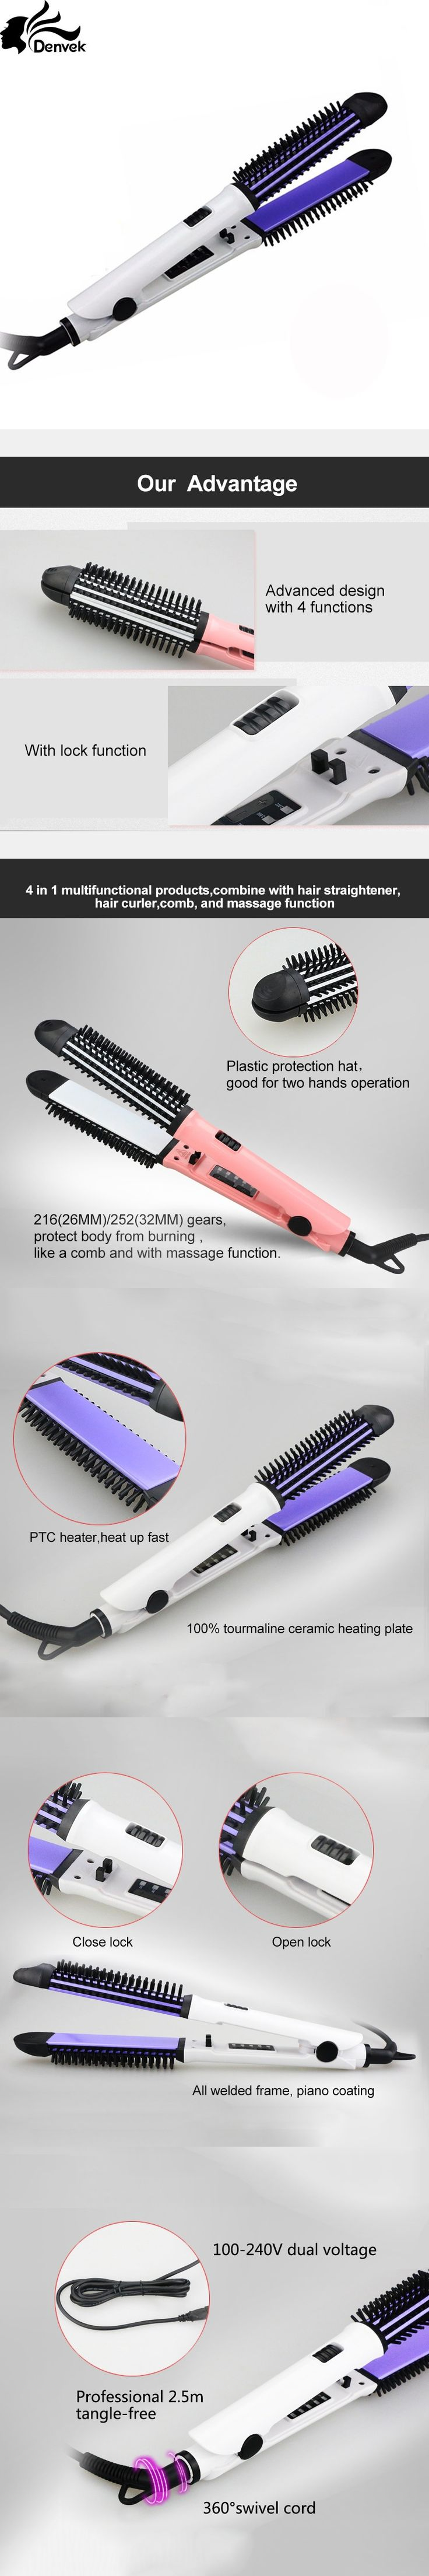 4 in1 multifunctional products combine with hair straightener hair curler comb hot comb and massage function PTC heating